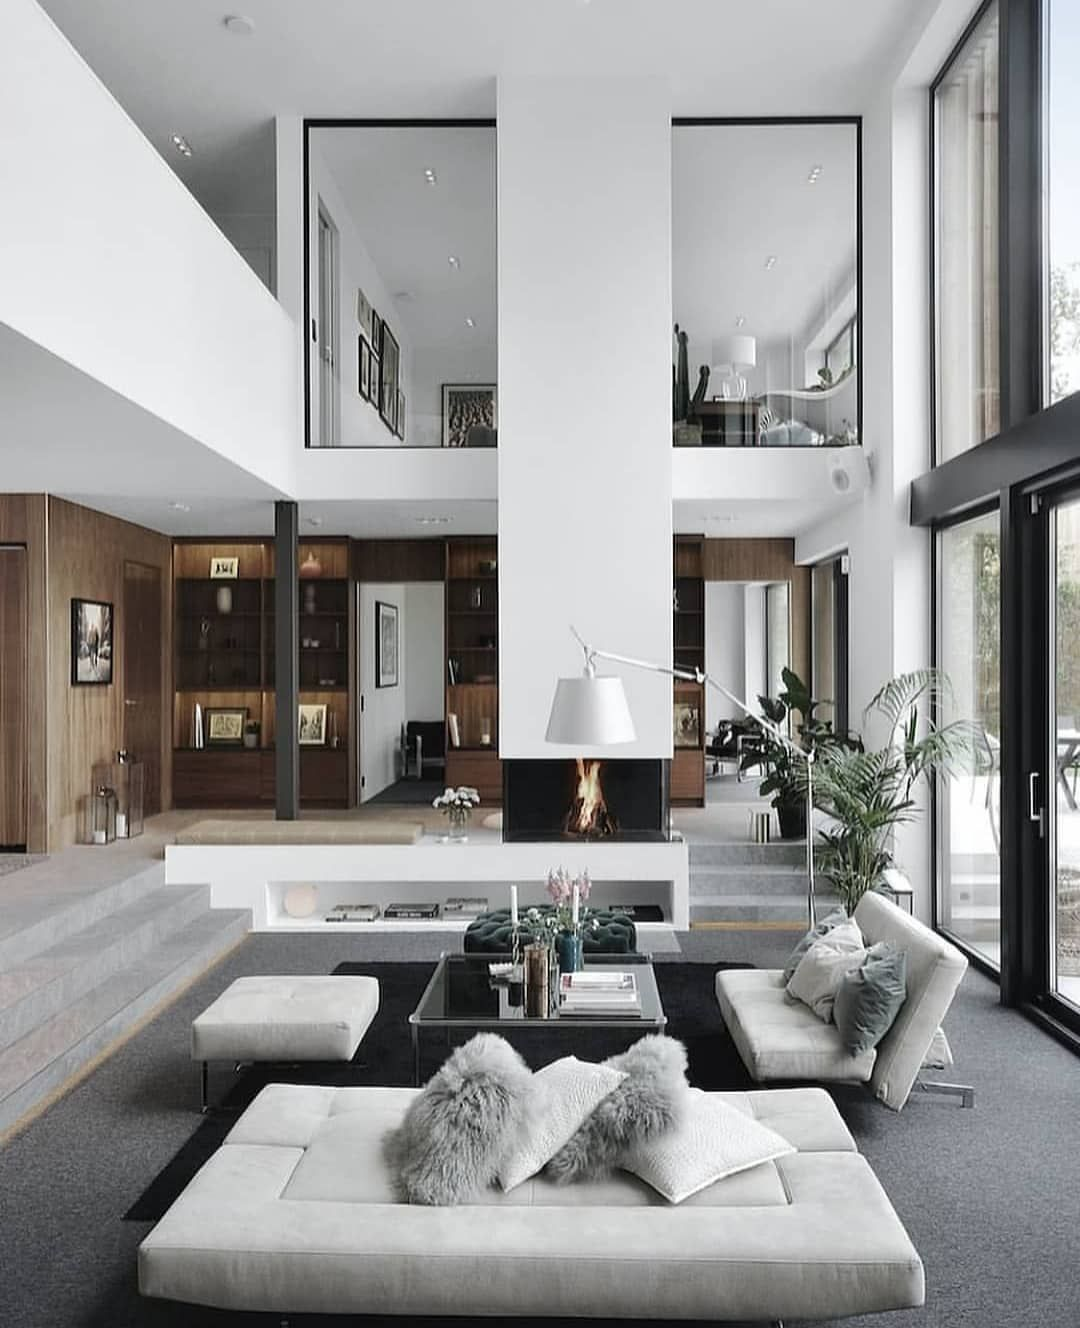 What Do You Think About This Amazing Interior Follow Houseaddictive By Isabellalowengr Interior Design Living Room House Interior Modern House Design